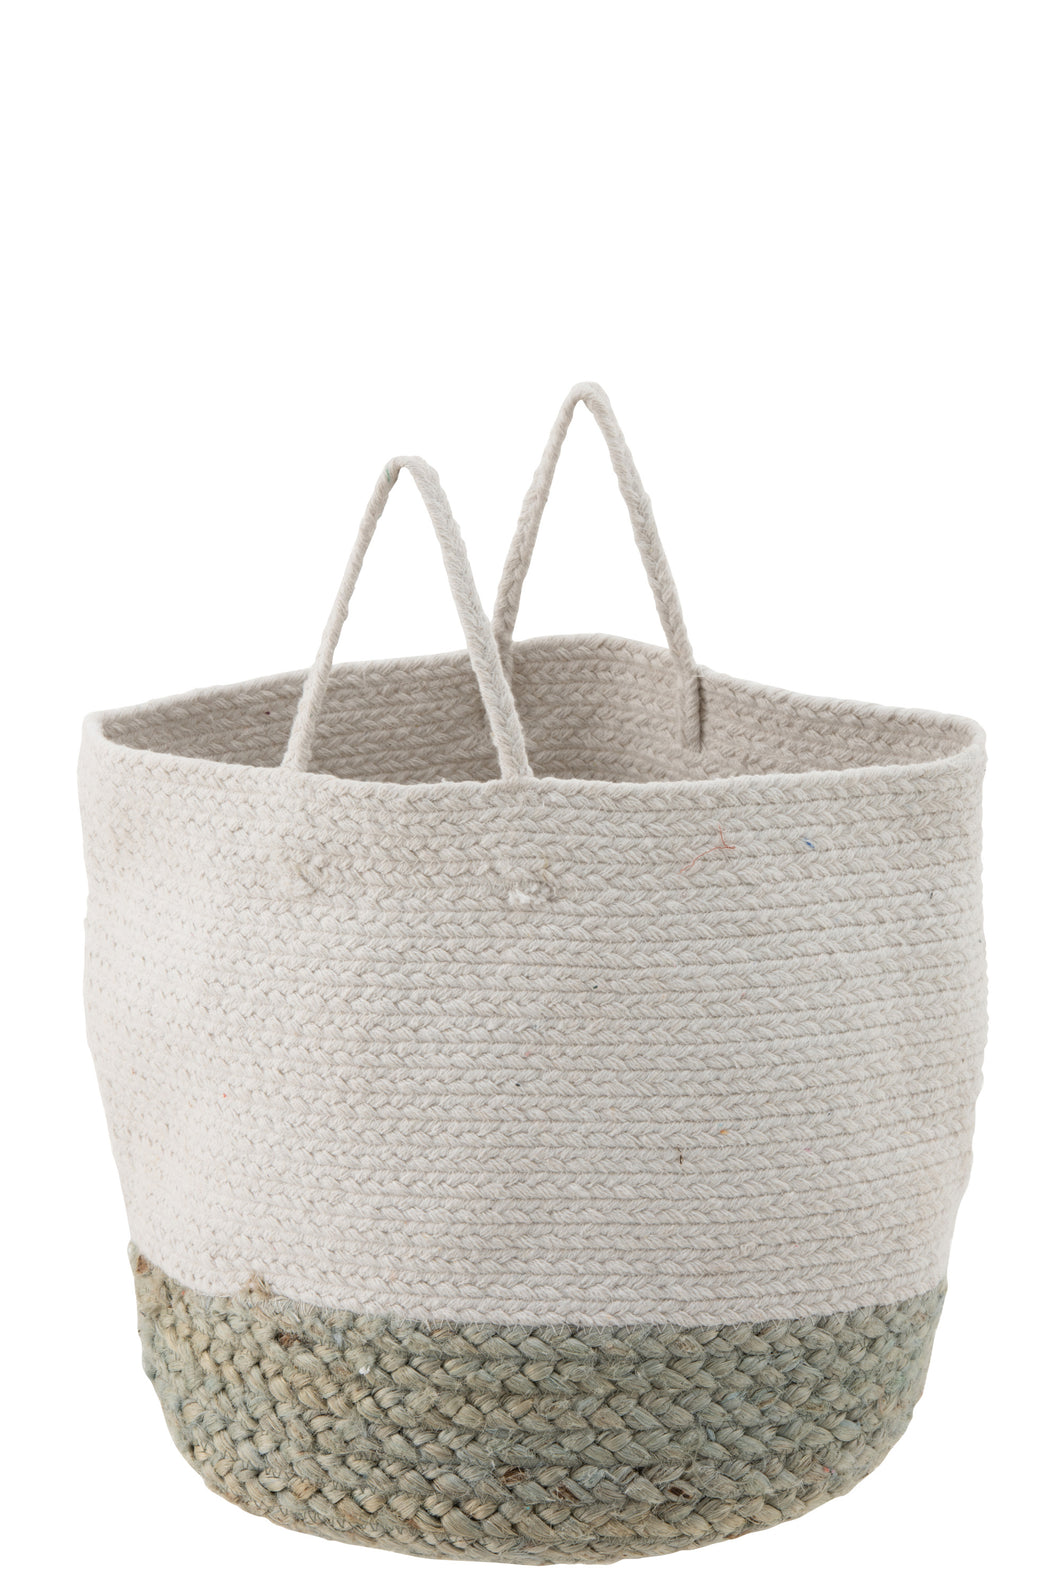 Jute White Basket With A Sage Green Border - Large